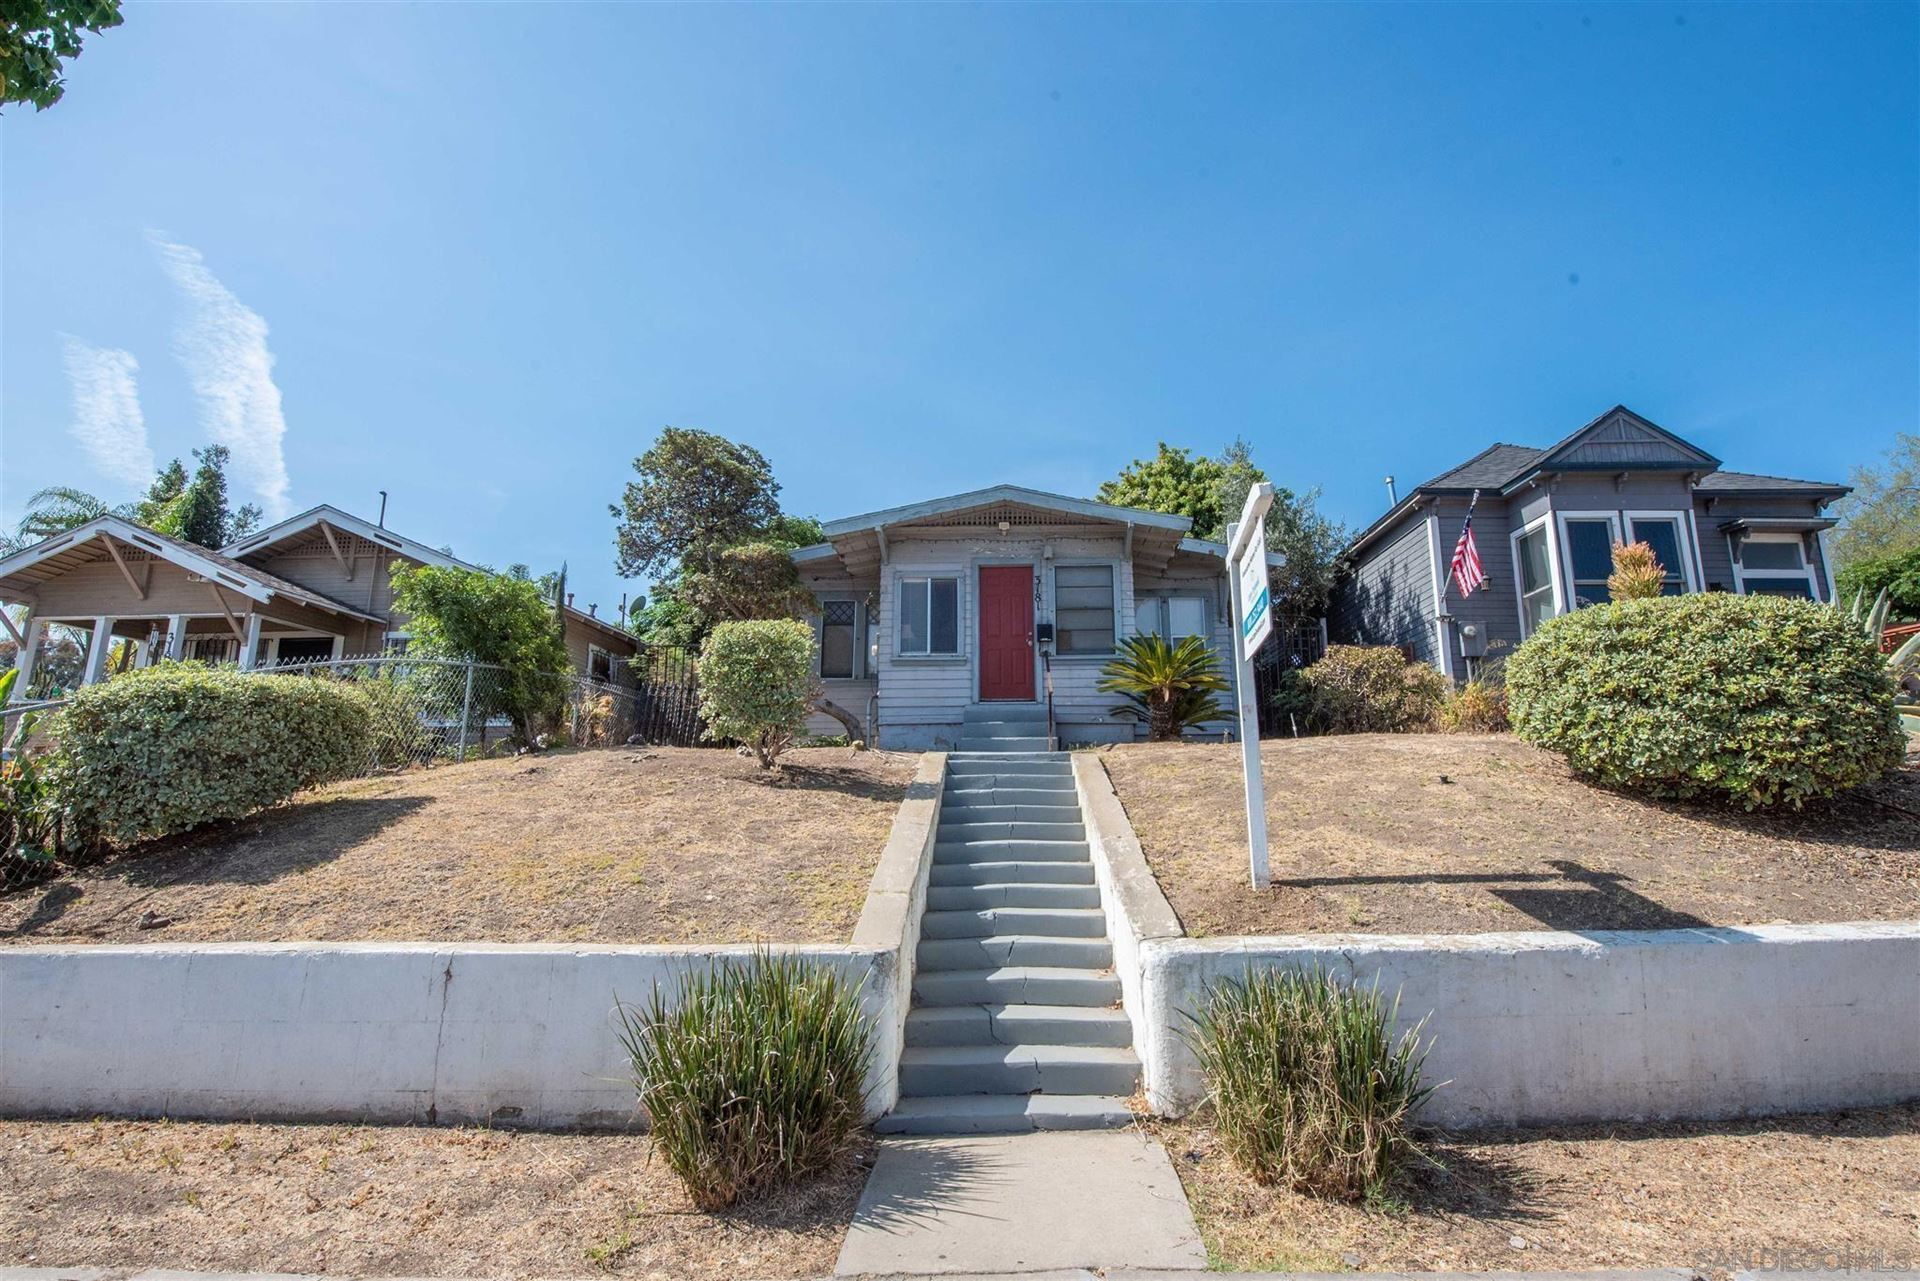 Photo of 3181 Imperial Ave, San Diego, CA 92102 (MLS # 210021610)